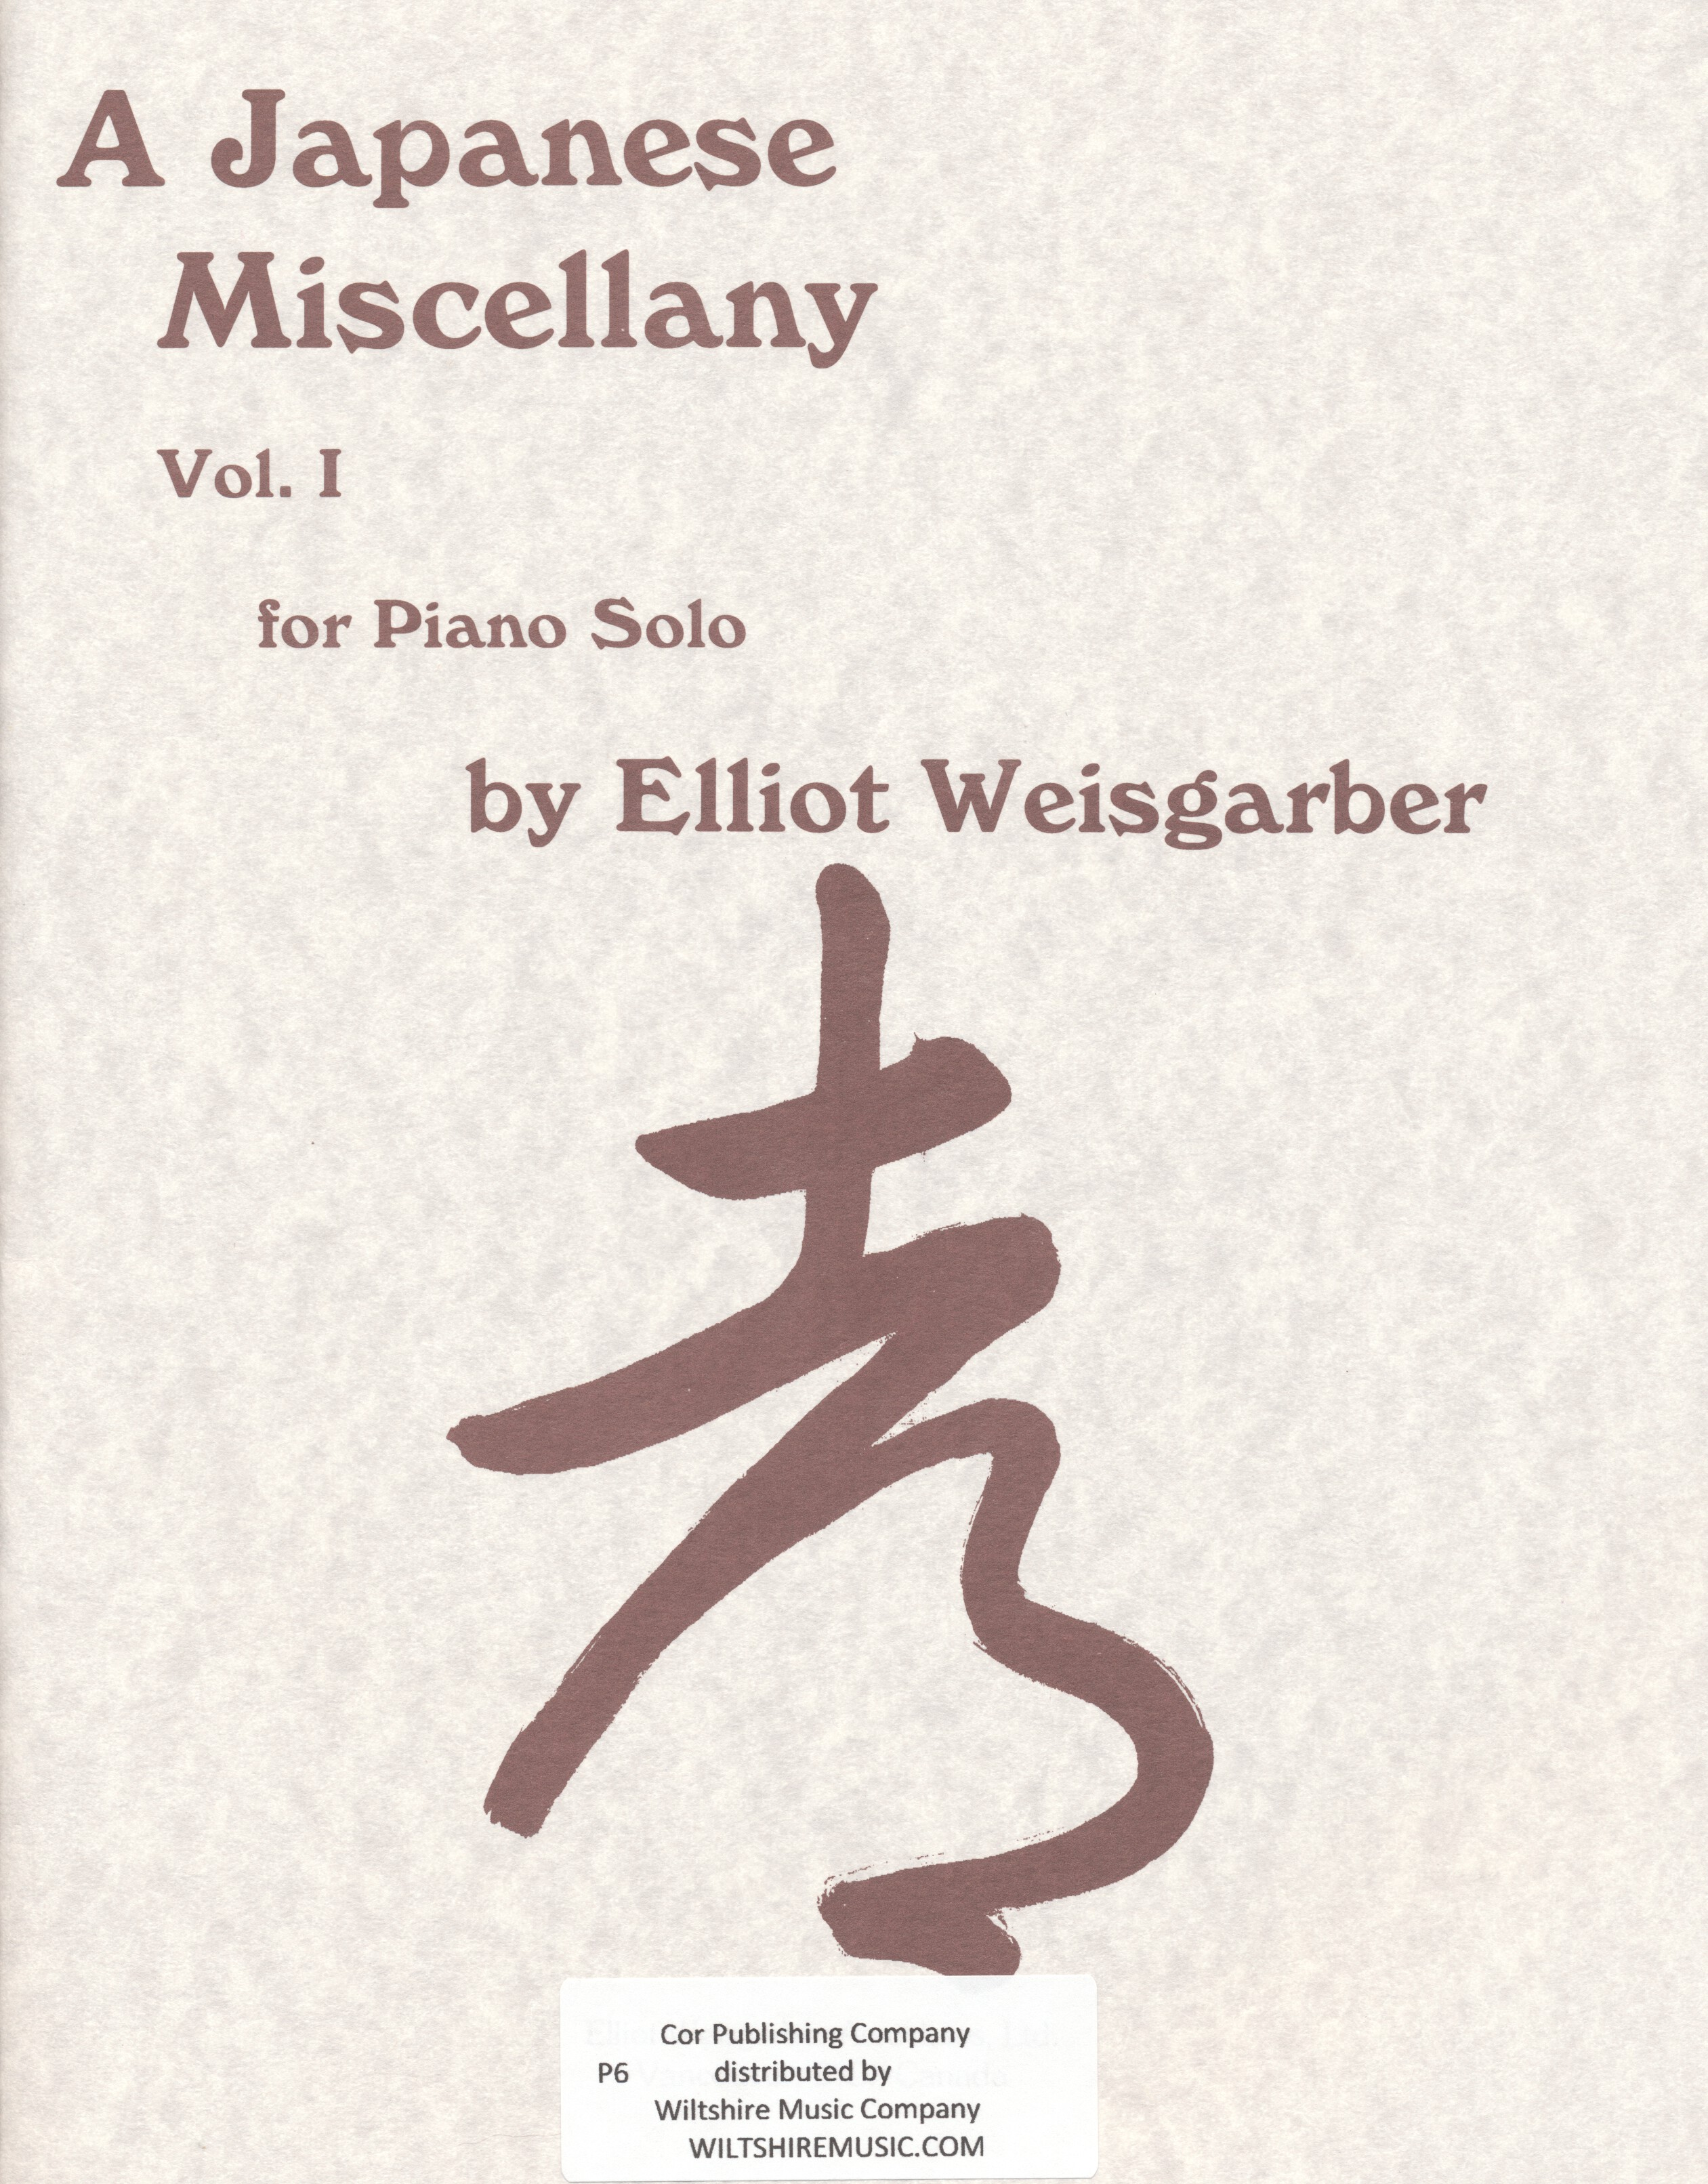 A Japanese Miscellany, Elliot Weisgarber